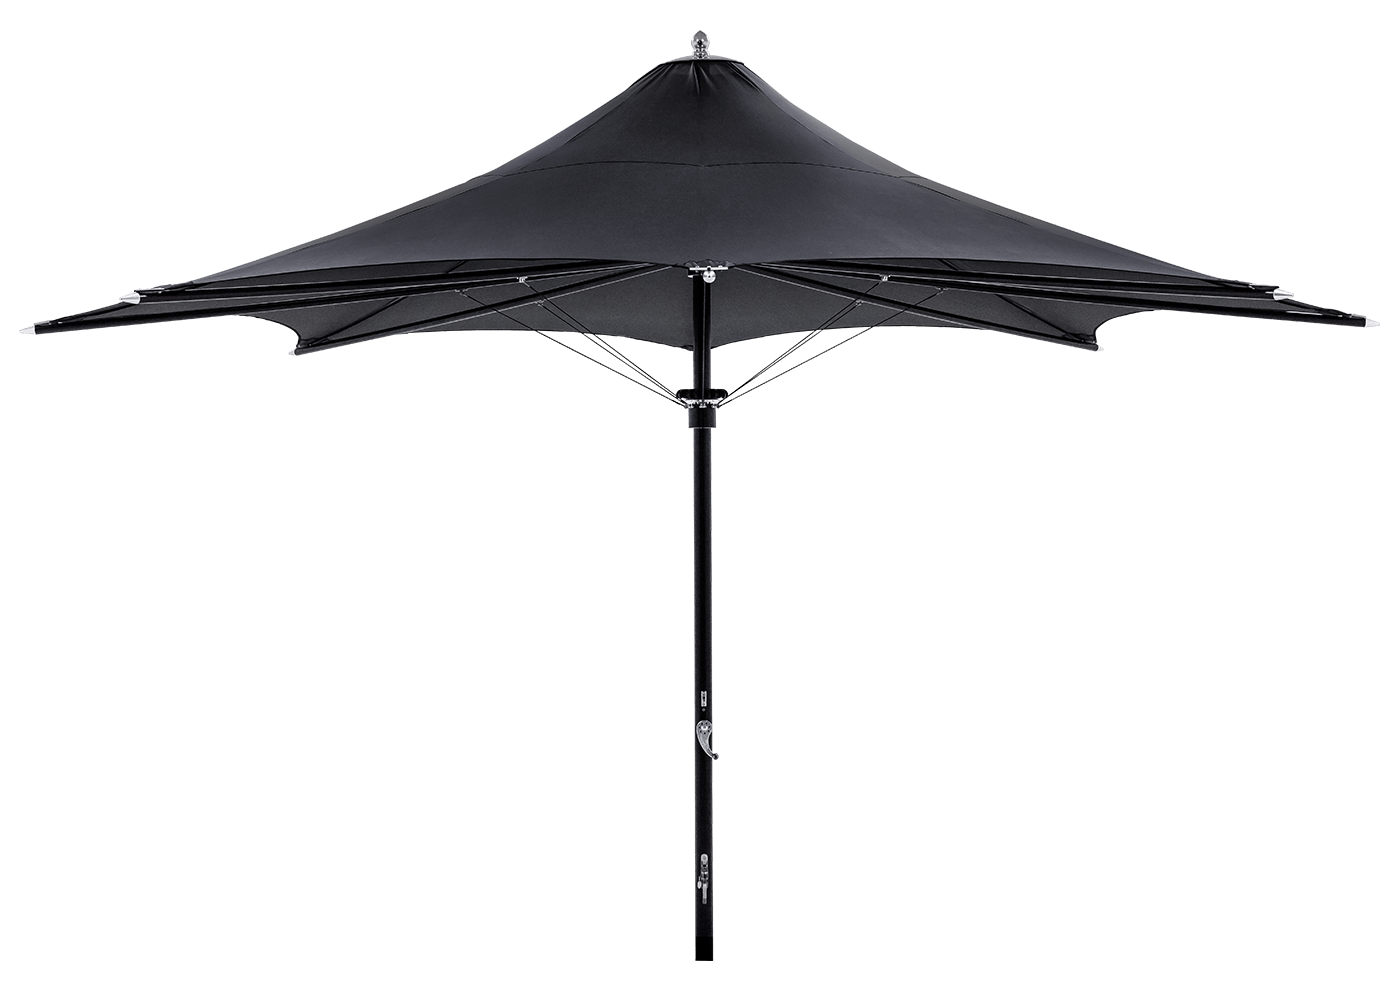 Grilling clipart picnic table umbrella. Pictures of image group